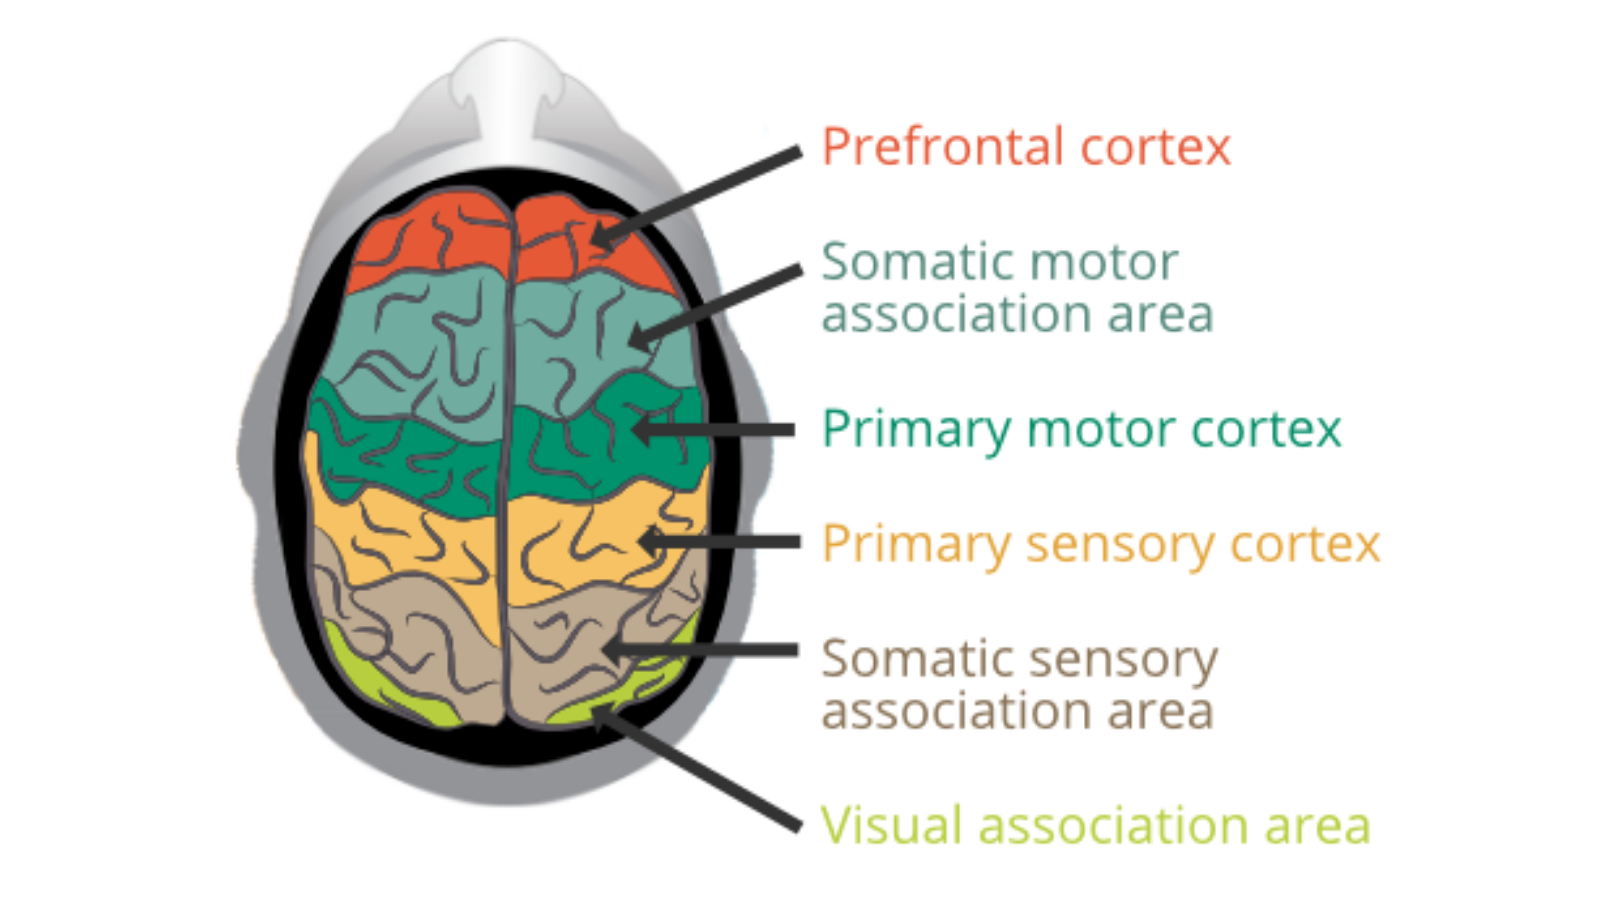 Our brain's cerebral cortex is responsible for the majority of our intellectual functions and behavior